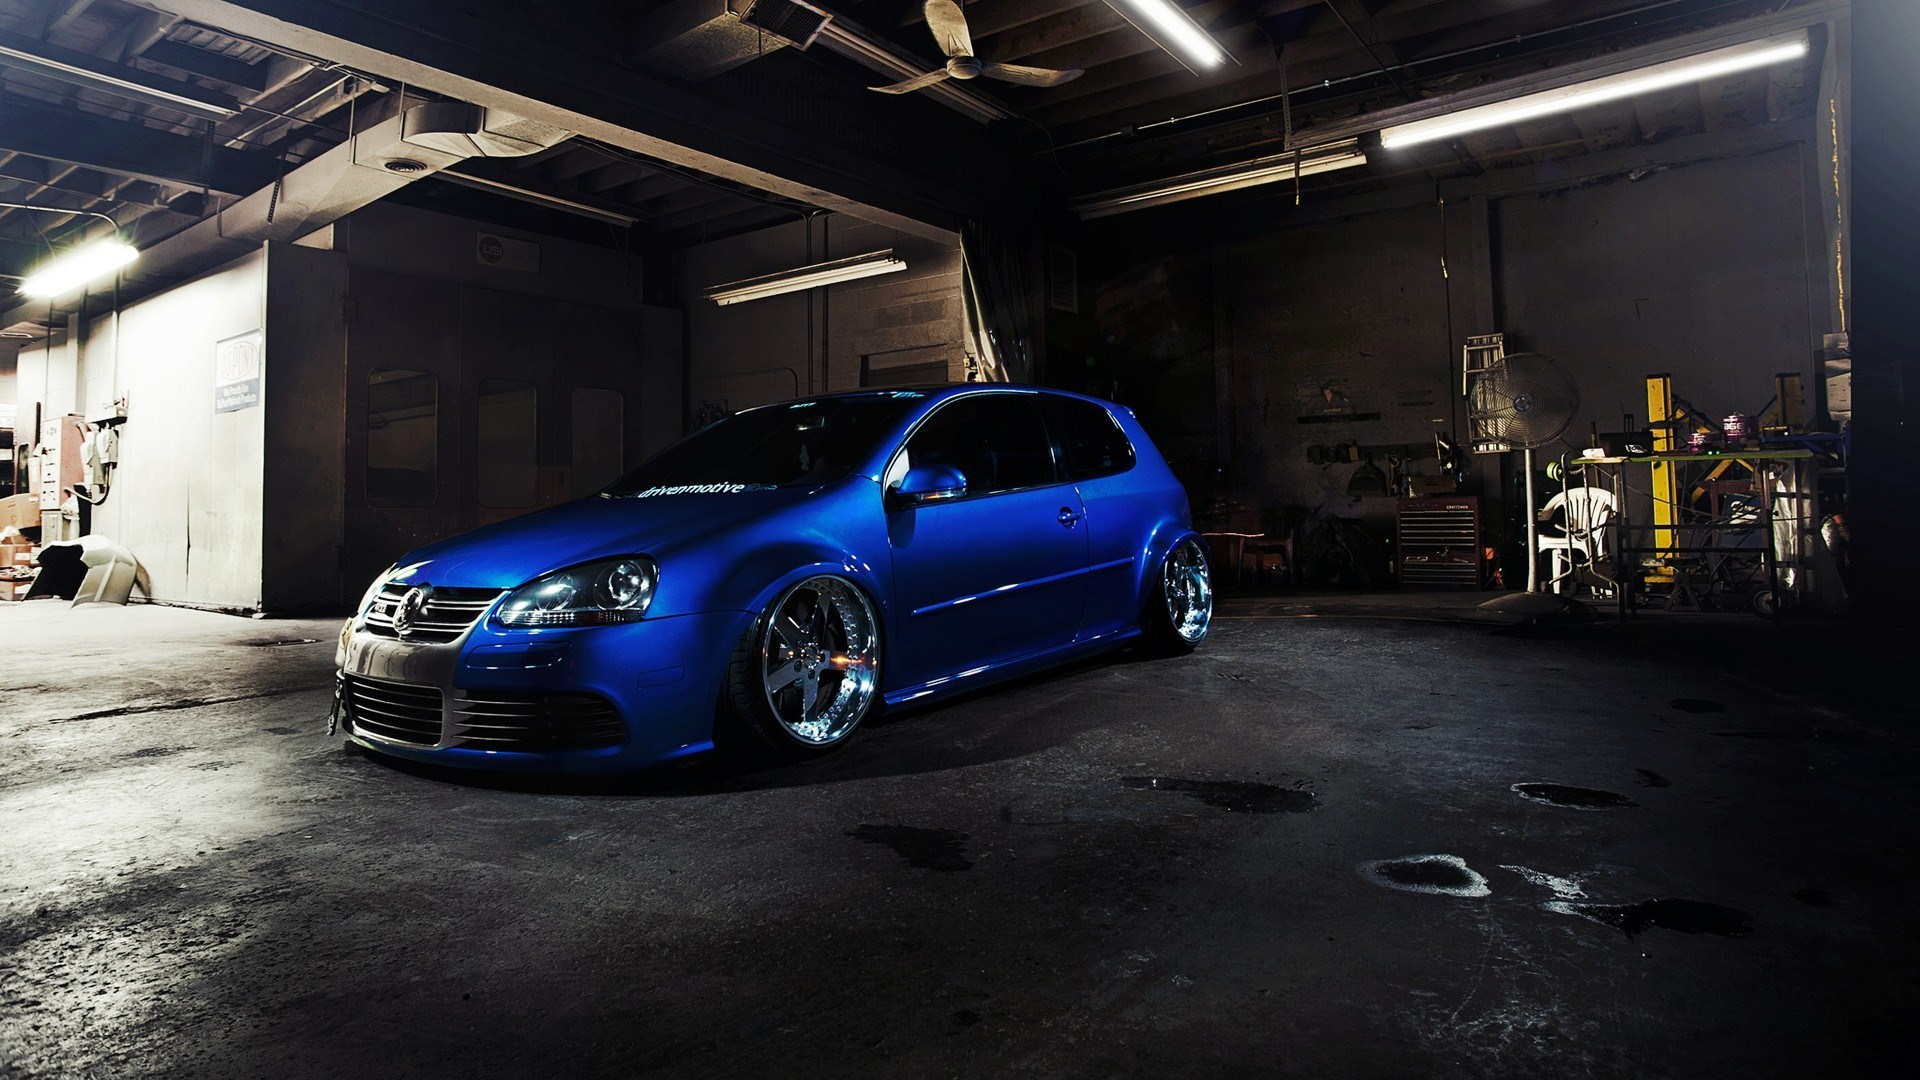 Top Hd Wallpapers Cars Wallpapers Desktop Hd: VW R32 Wallpaper